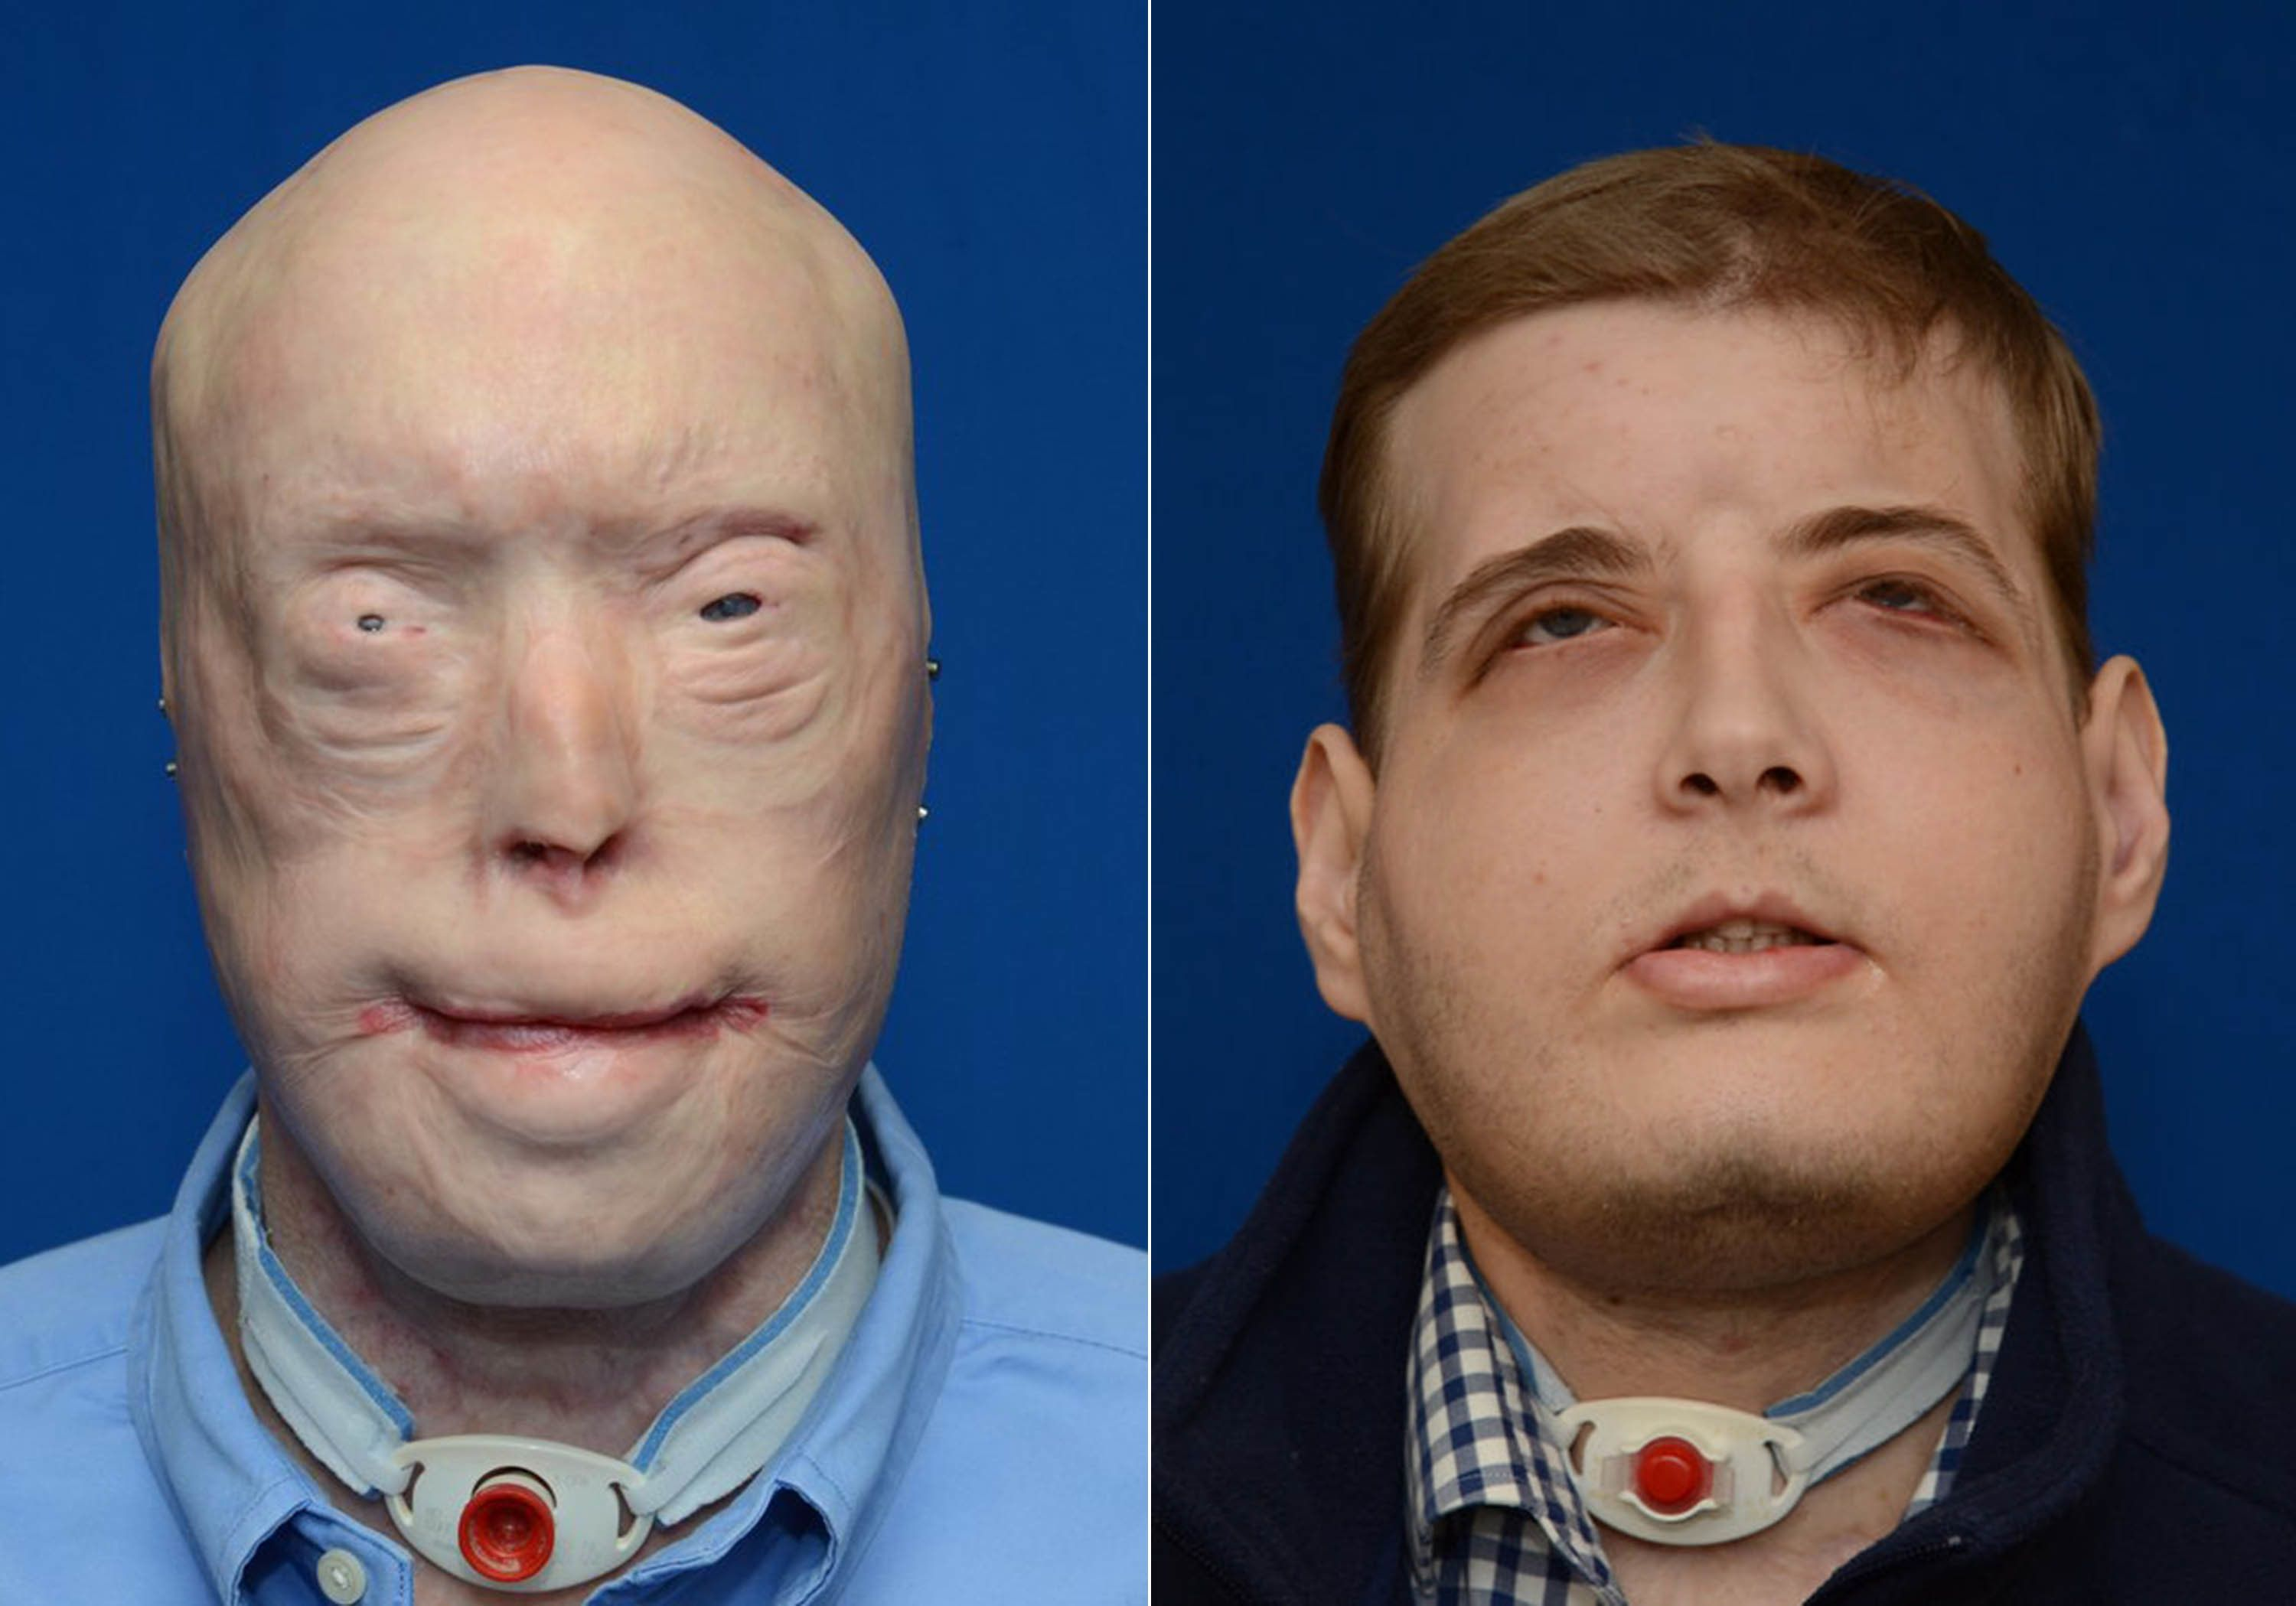 Patrick Hardison prior to his face transplant surgery (left) and in February 2016, about six months after